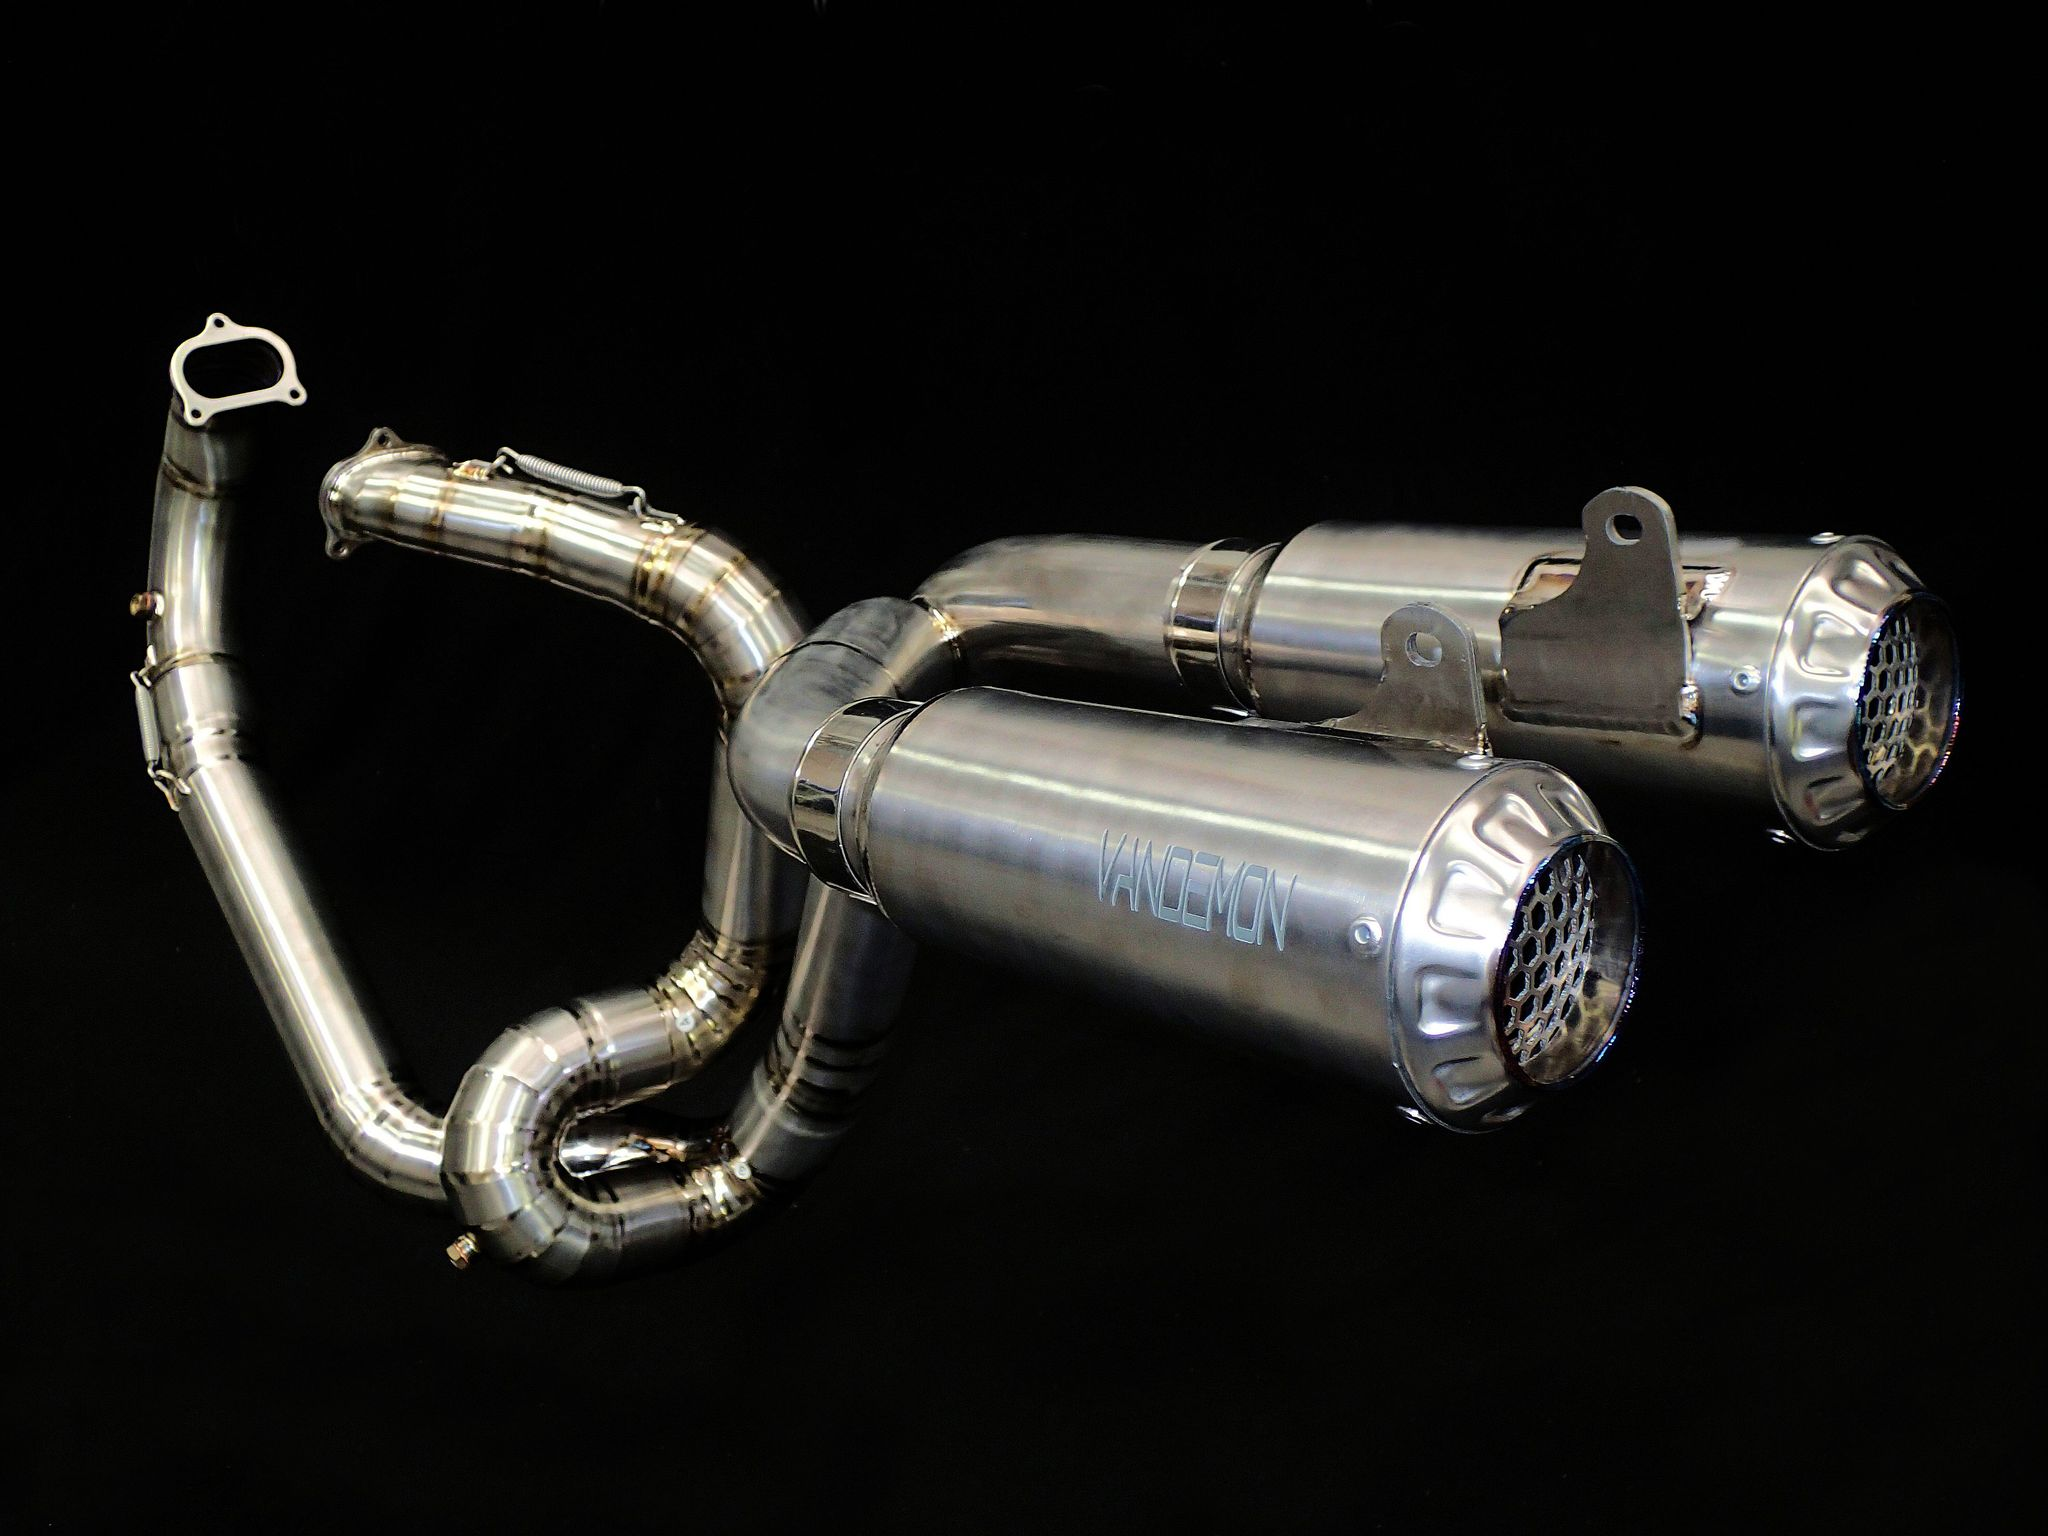 VANDEMON EXHAUST SYSTEMS